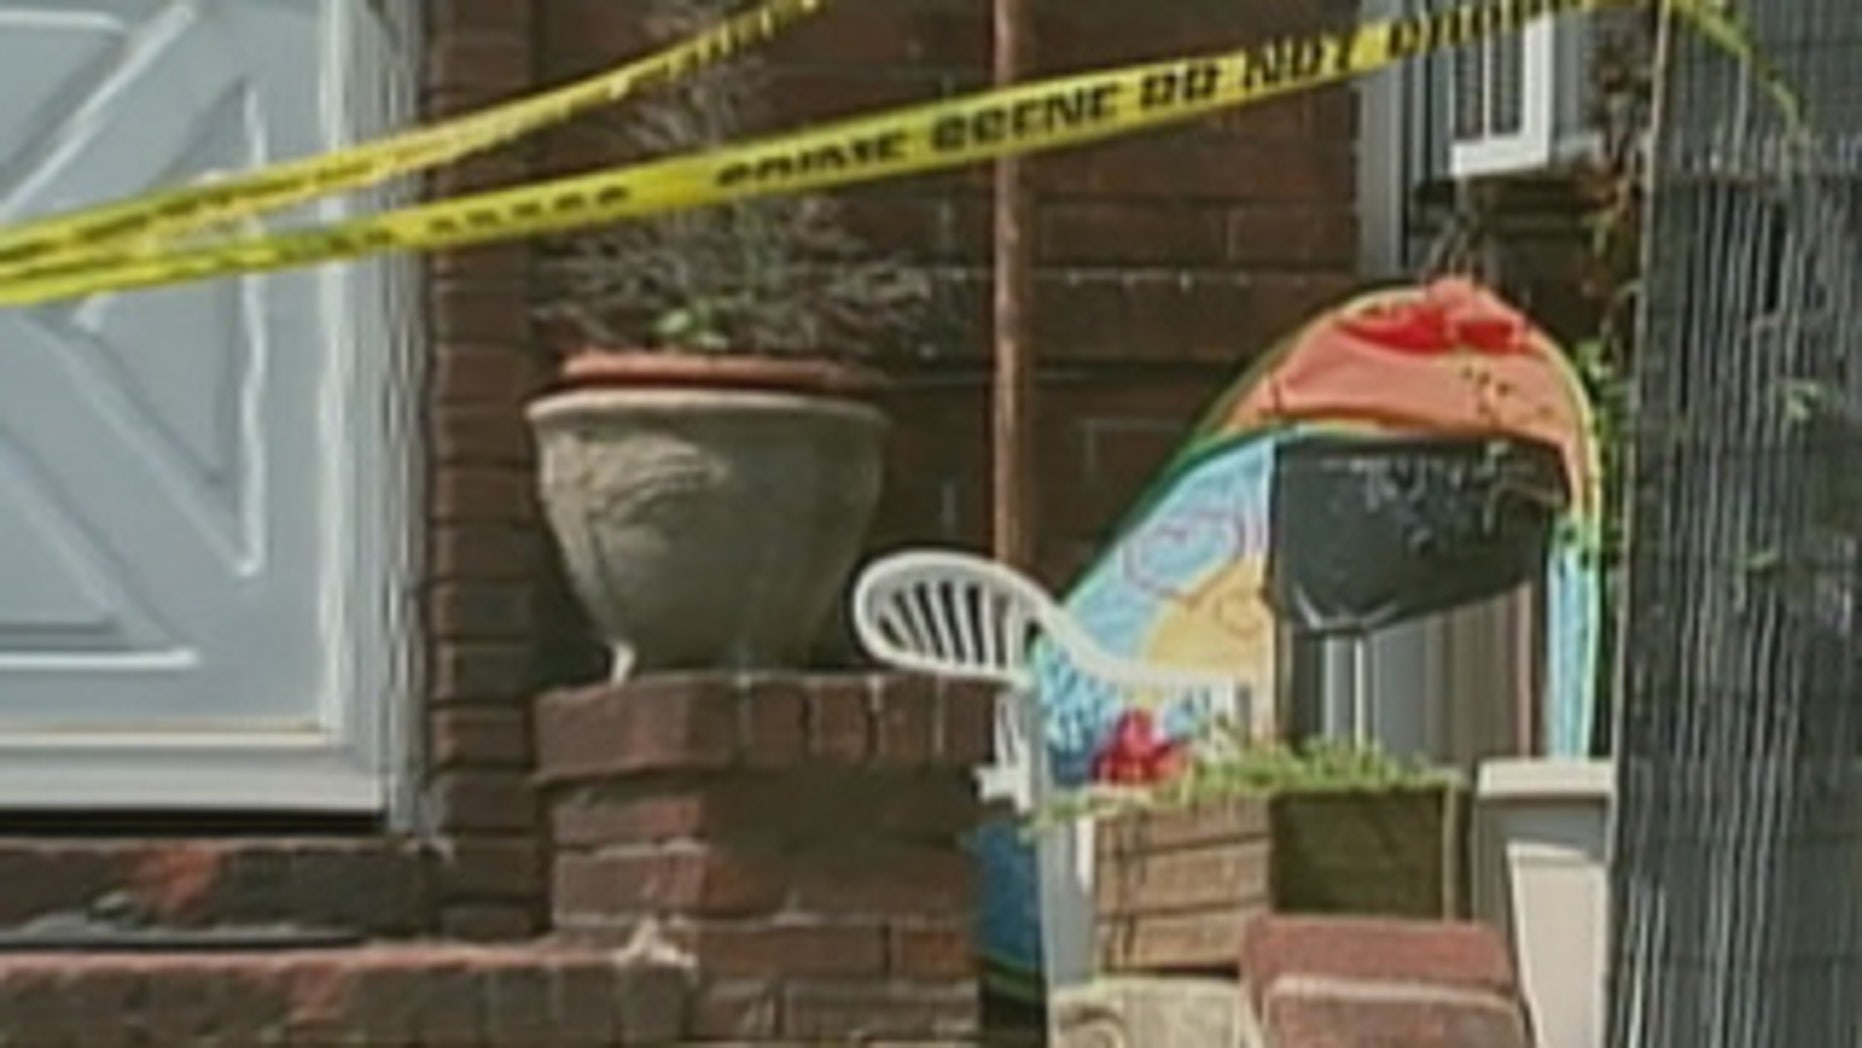 A newborn was found inside a shoe box in front of a house in Astoria, Queens.